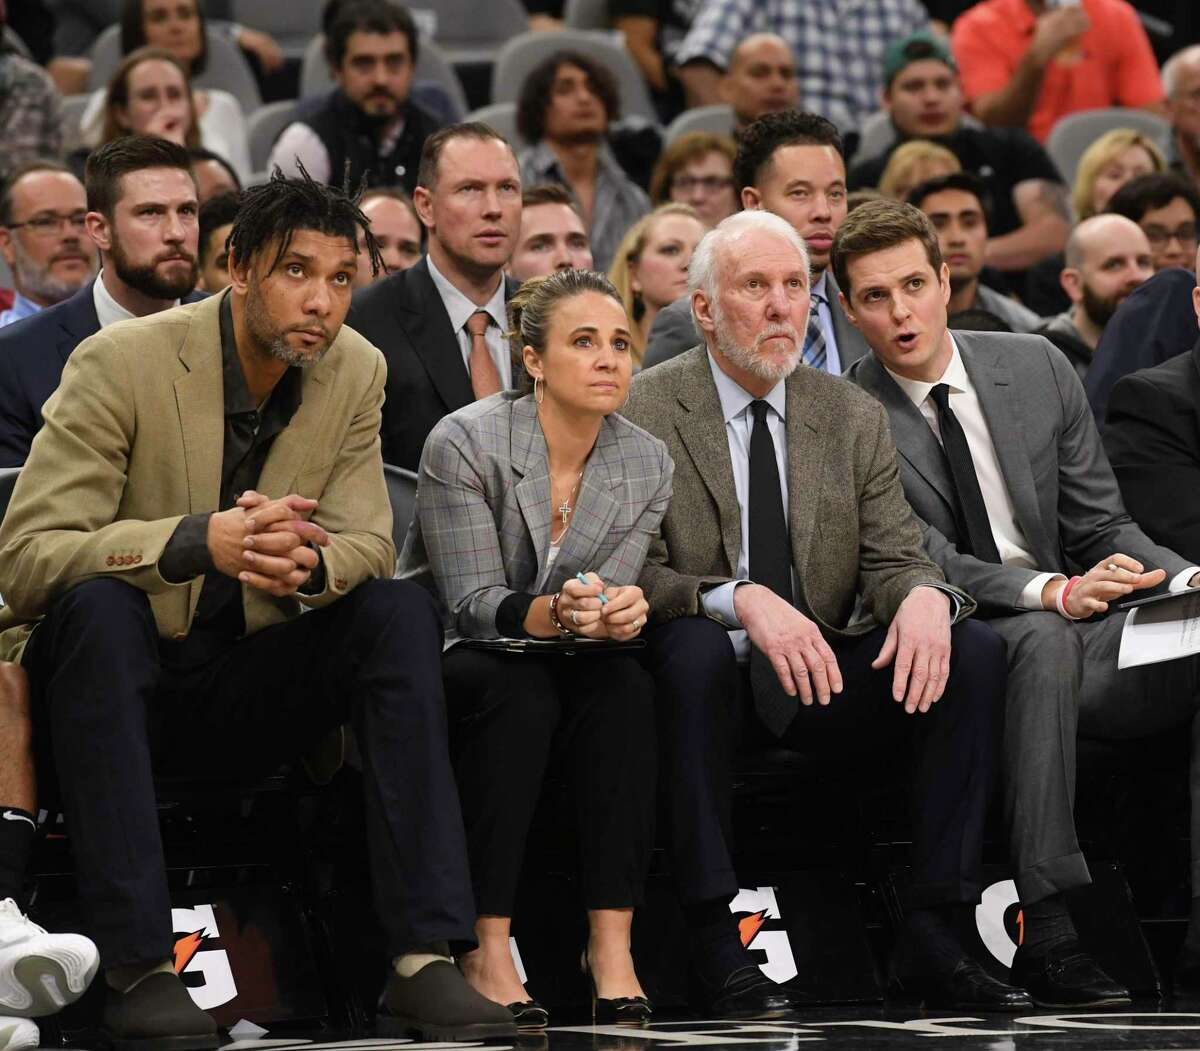 Becky Hammon was the first female assistant coach in the NBA to gain 'front row' status. Here she is framed by assistant coach Tim Duncan, left, San Antonio Spurs head coach Gregg Popovich, second from right, and assistant Will Hardy in a game against the Pacers in March.